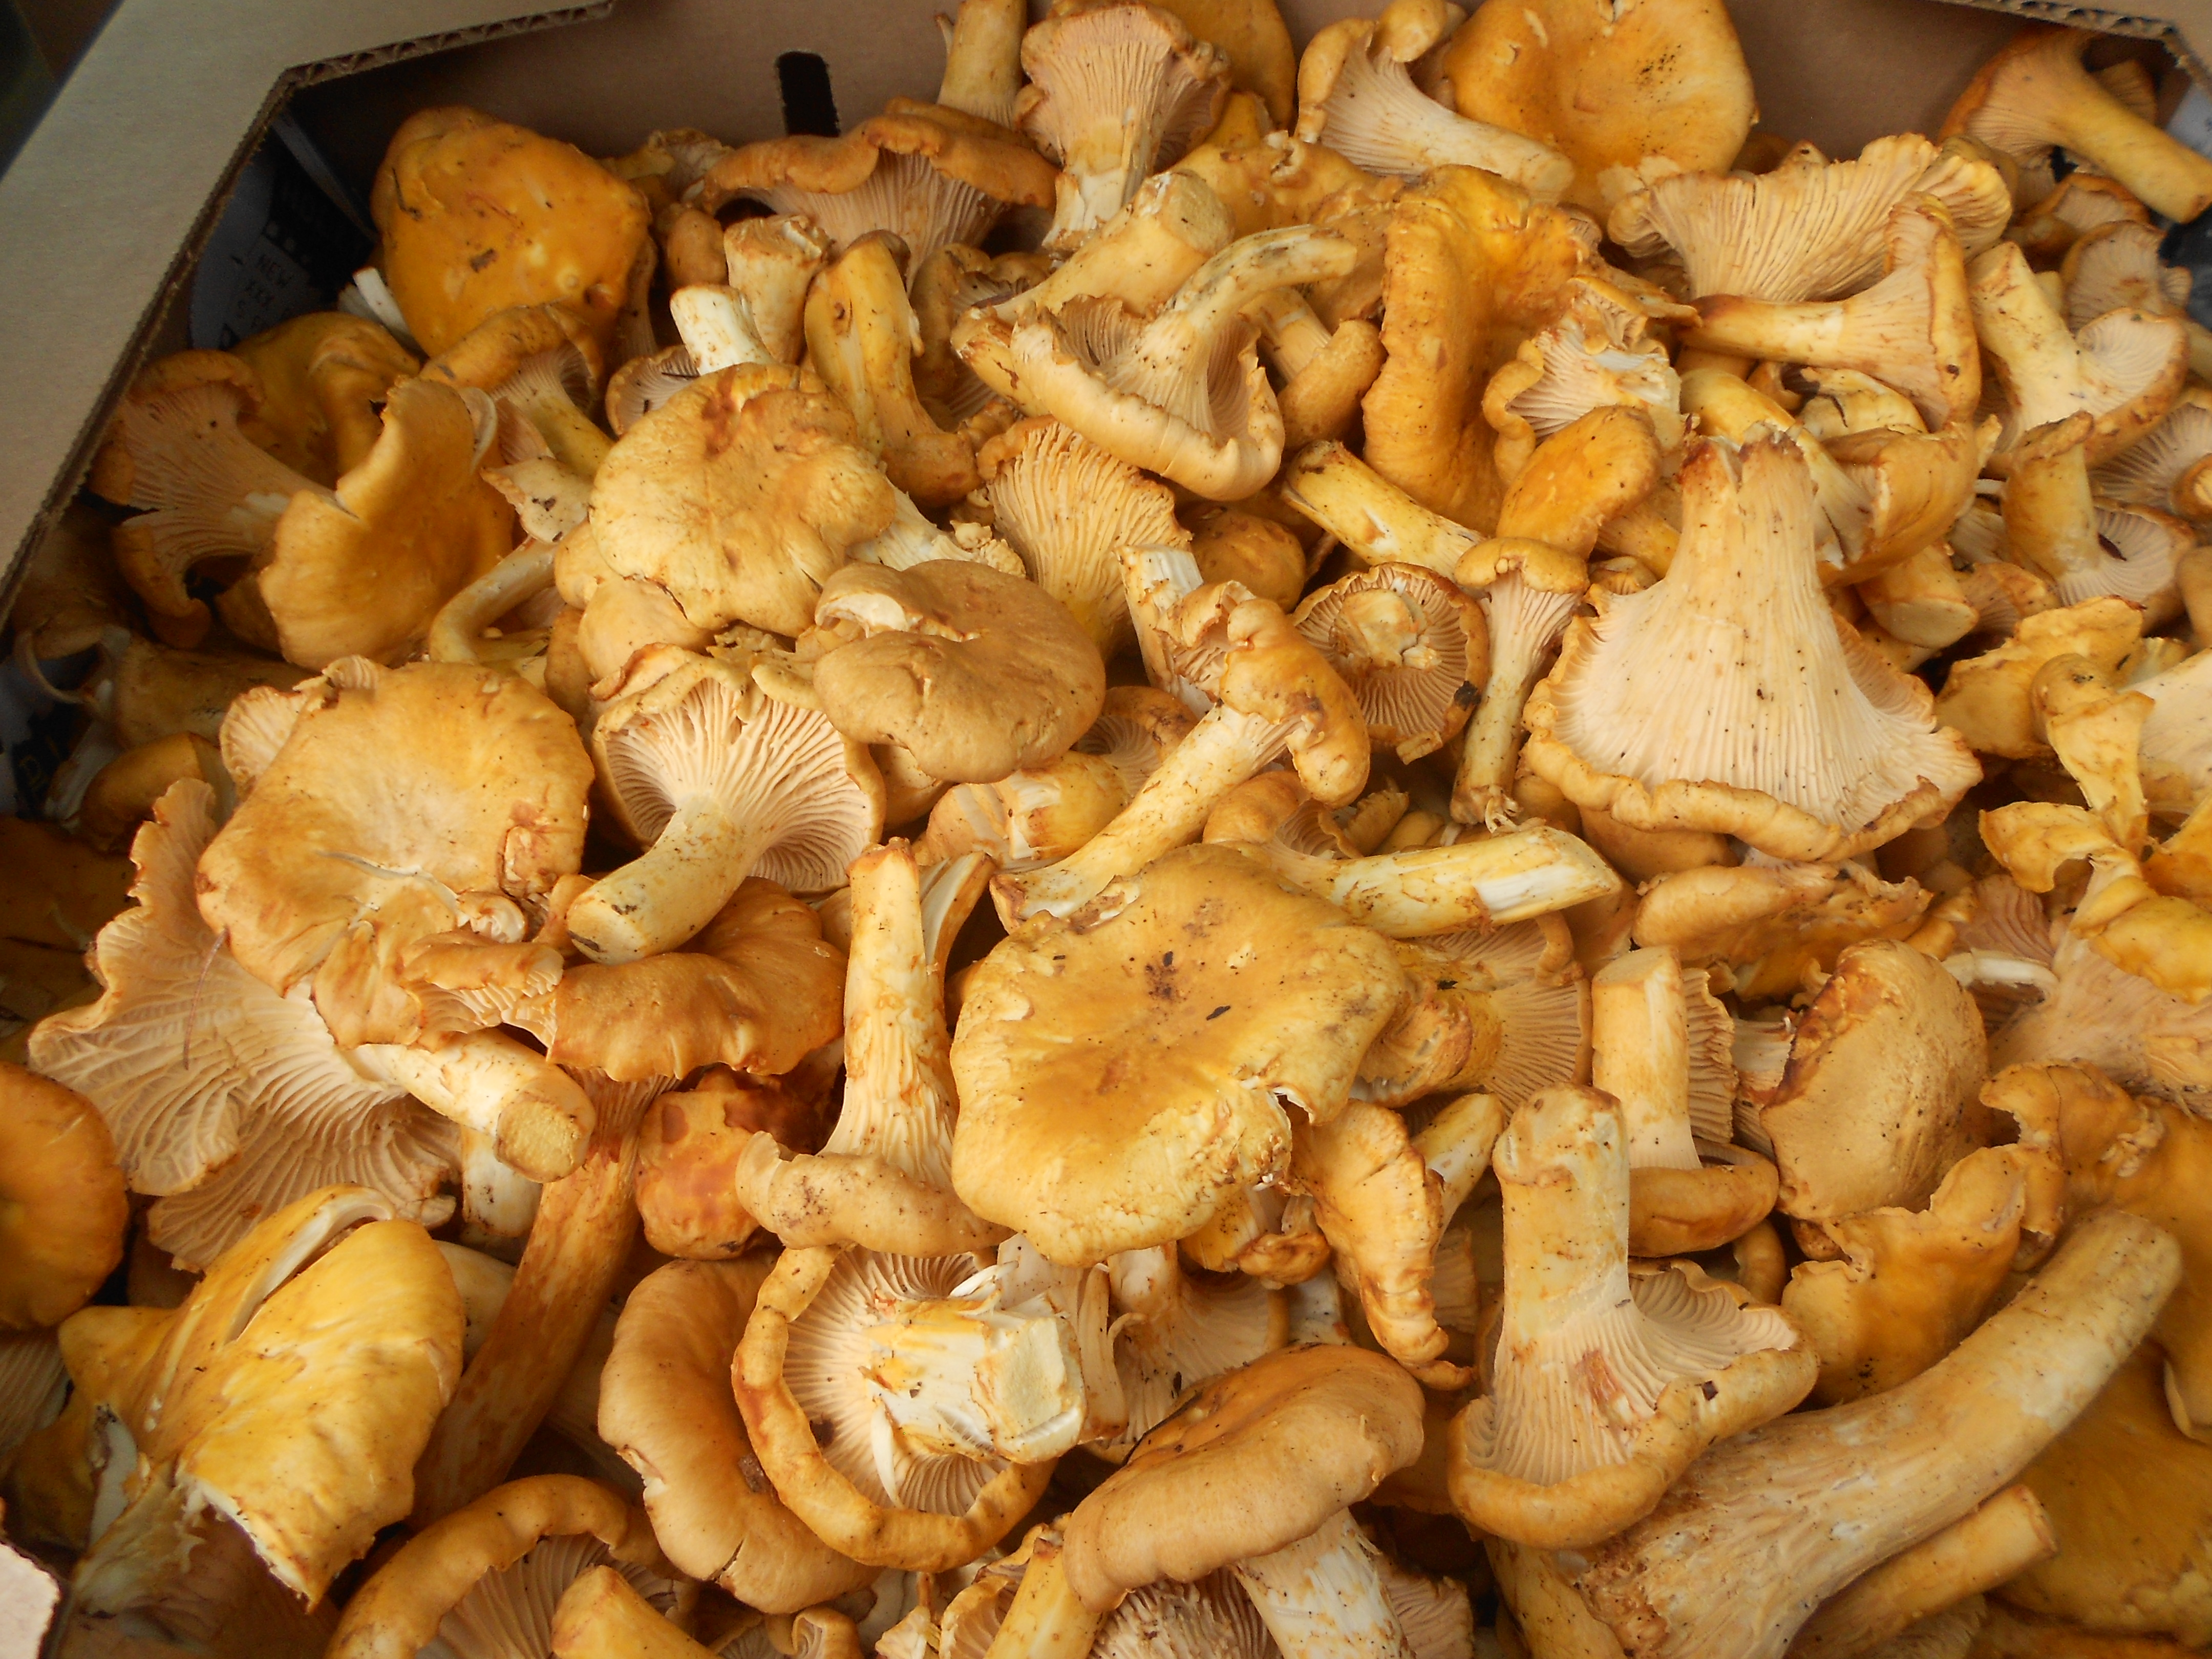 Special Project: Mushroom hunting to survive